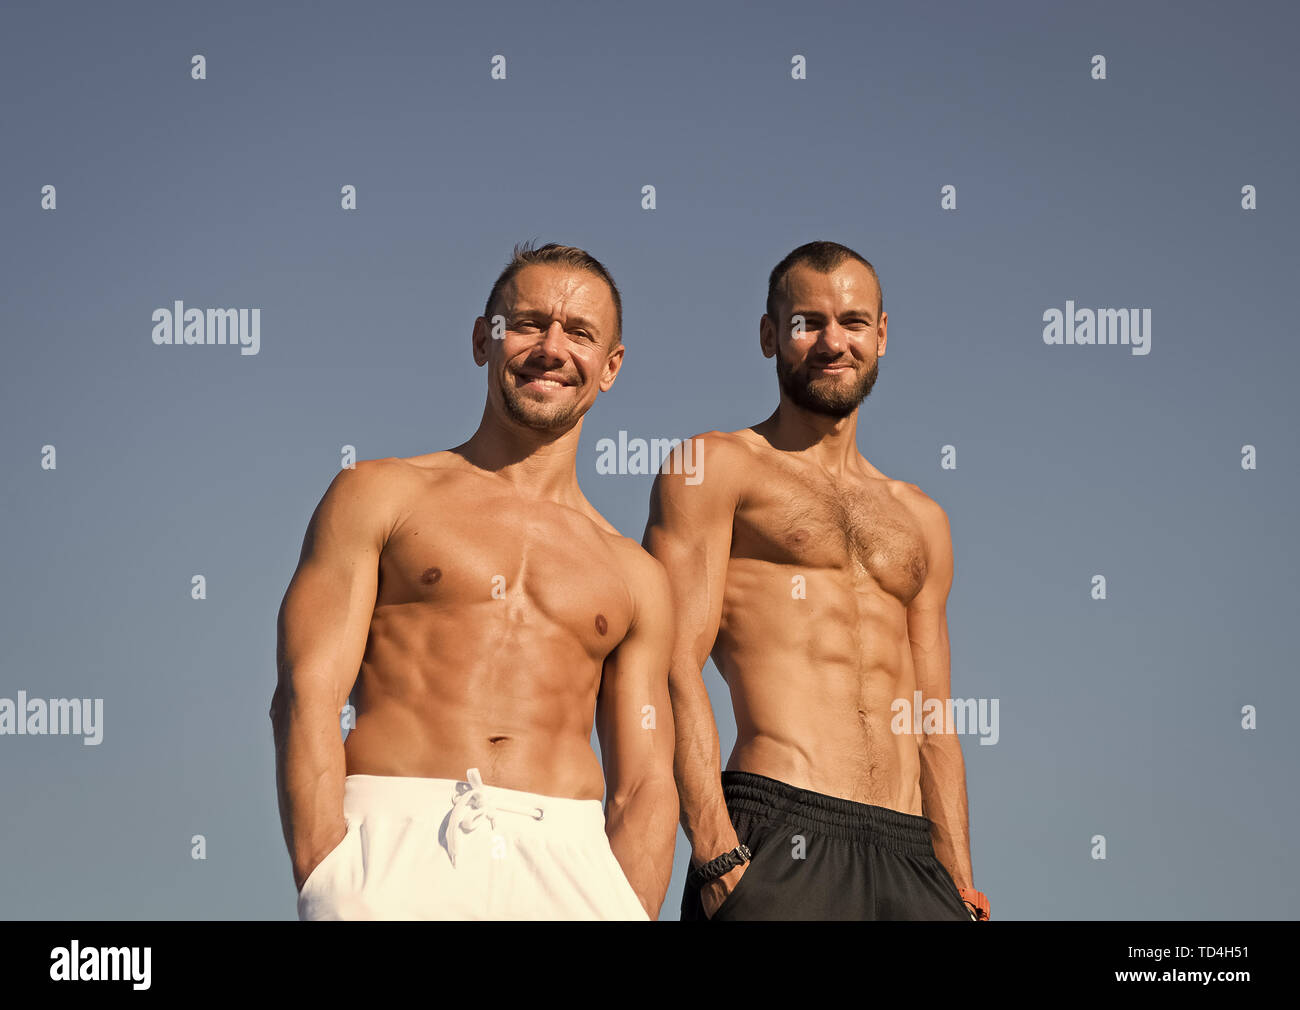 We are one. Strong and muscular men. Fit men with muscular torsos. Sport and health activities. The first wealth is health. Together stronger. - Stock Image